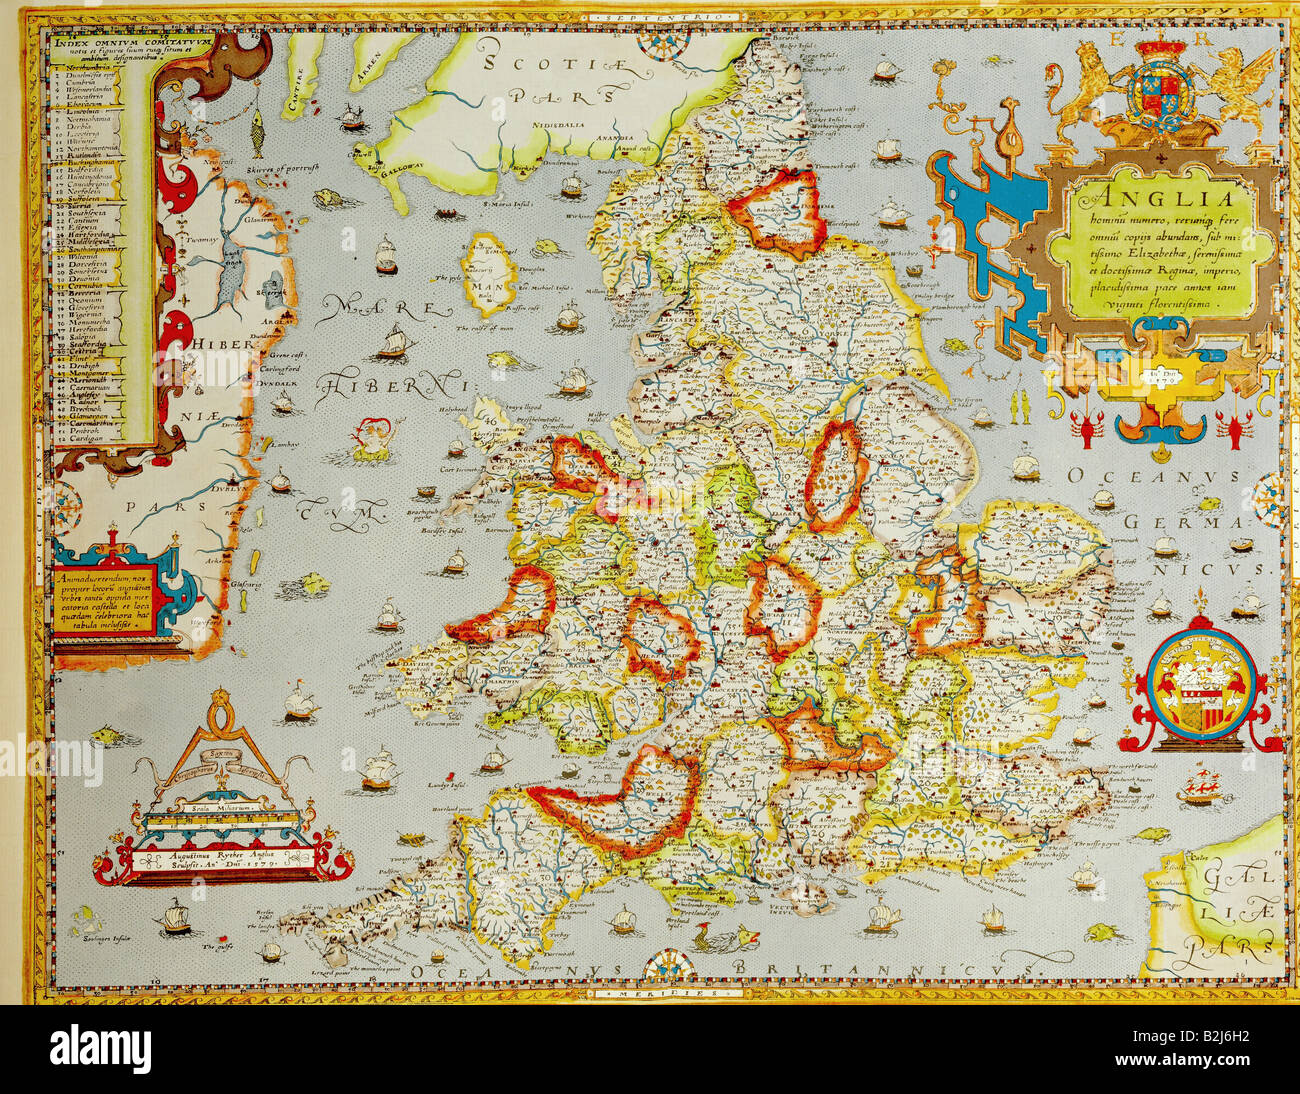 cartography maps Great Britain England during the reign of Queen